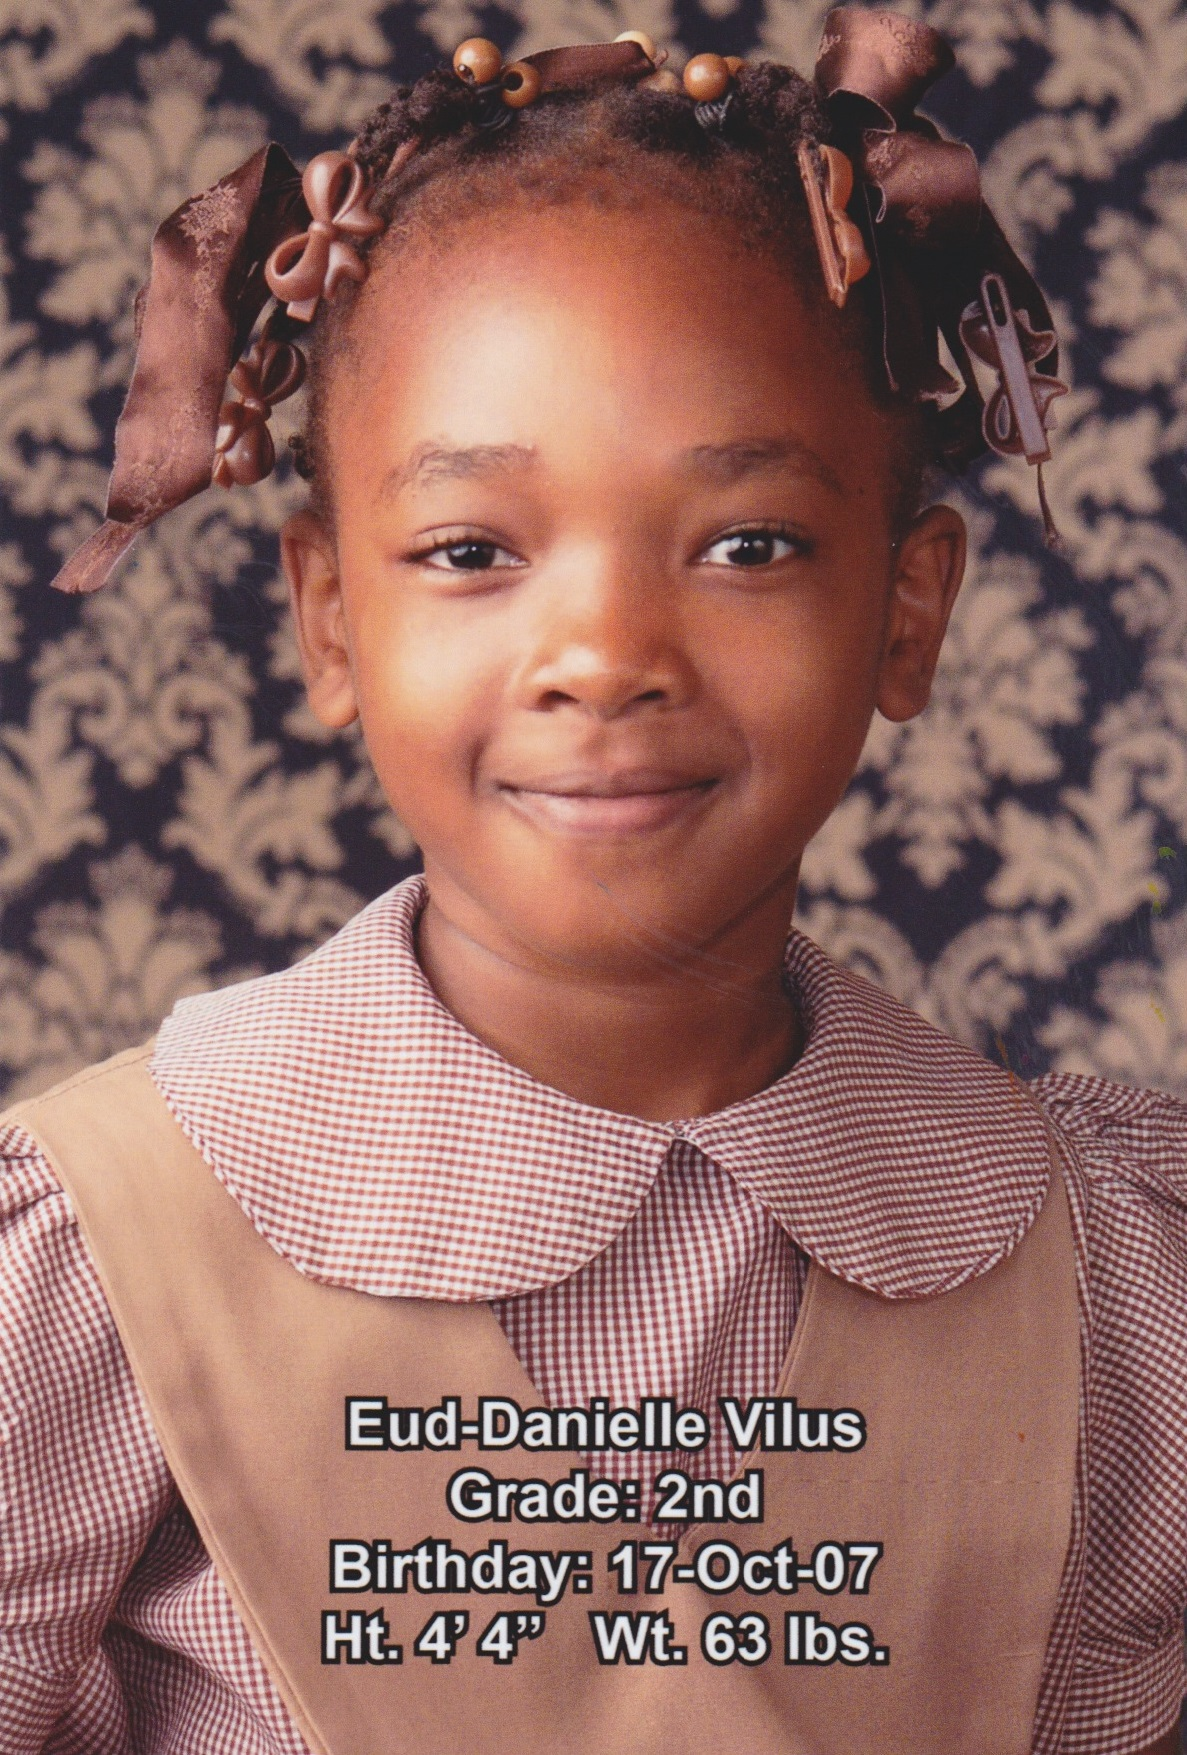 Eud-Danielle Vilus (April).jpg